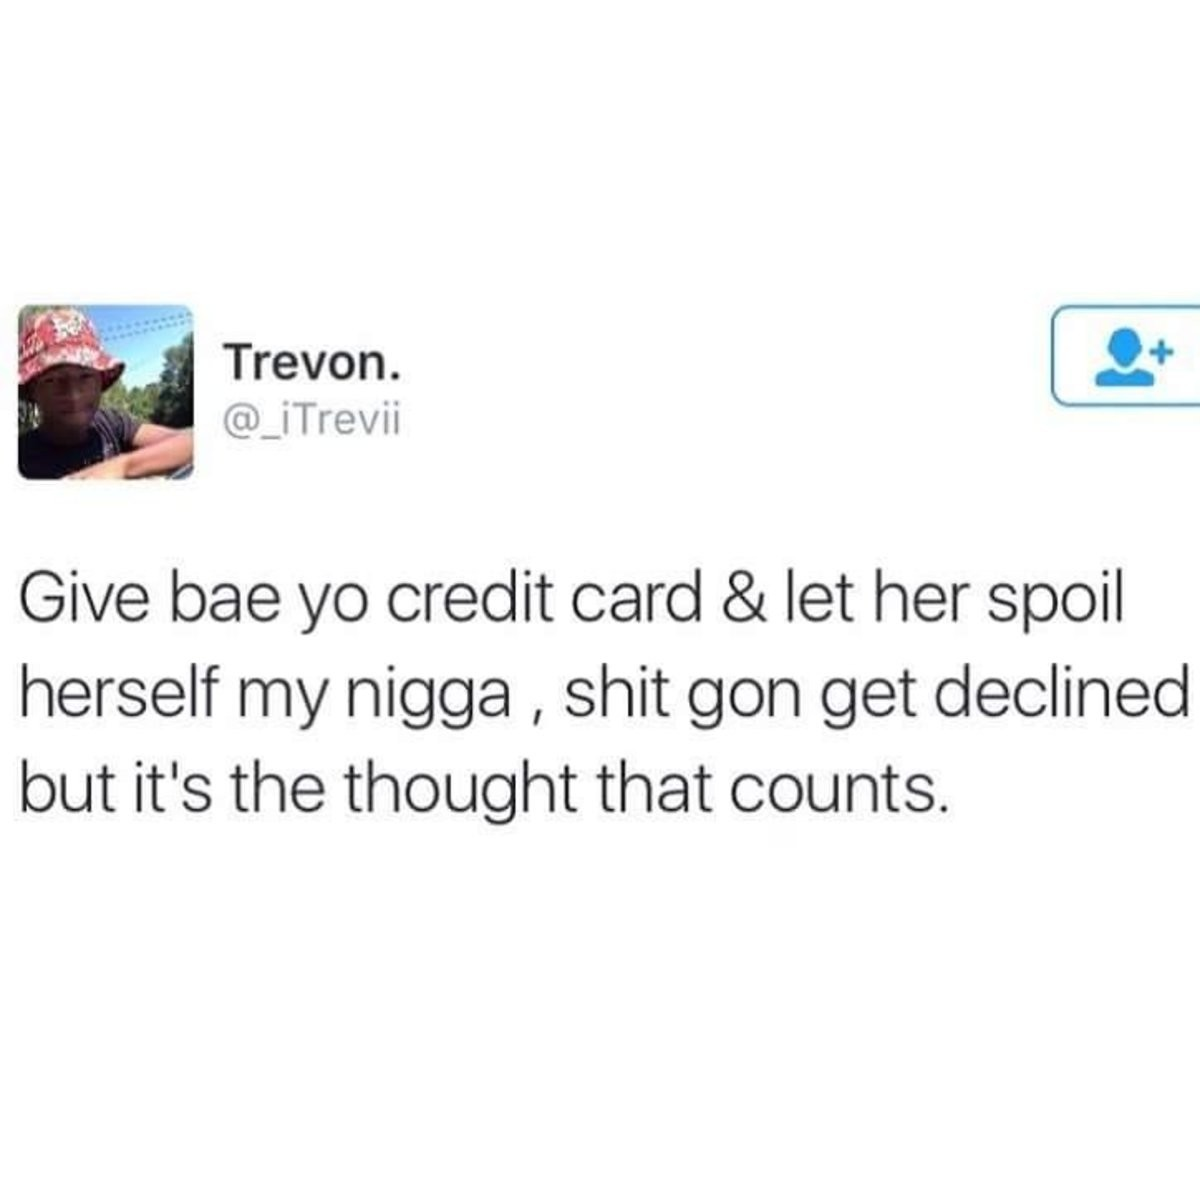 The thot that counts. Who am i kidding thots can't count.. Man, if your credit card is getting declined, I have horrible news for your credit. Which is basically the only thing that matters unfortunately.